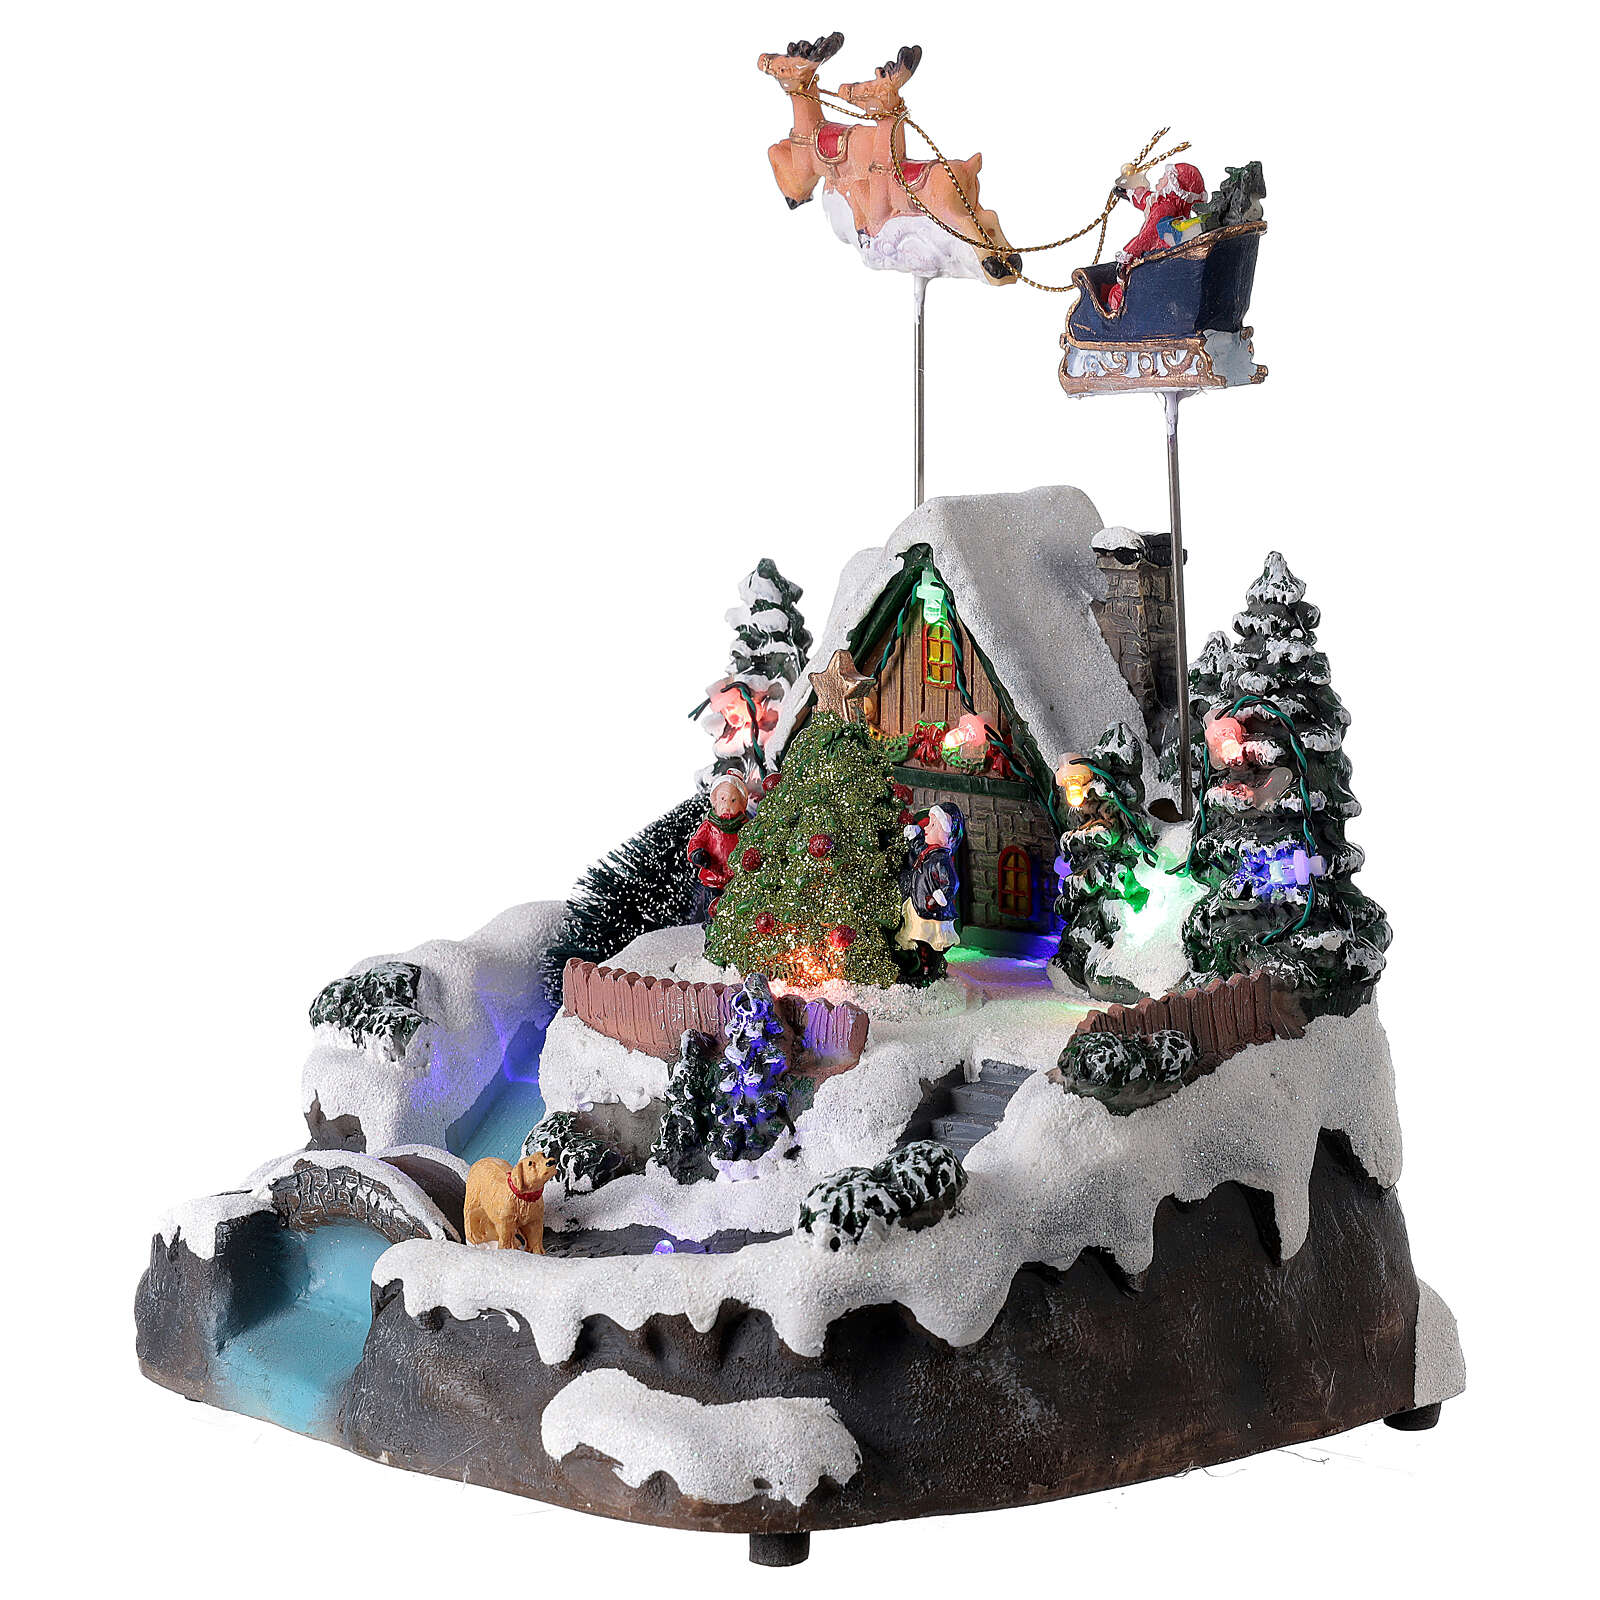 Santa Claus Christmas village lights music torrent 25x20x20 cm 3